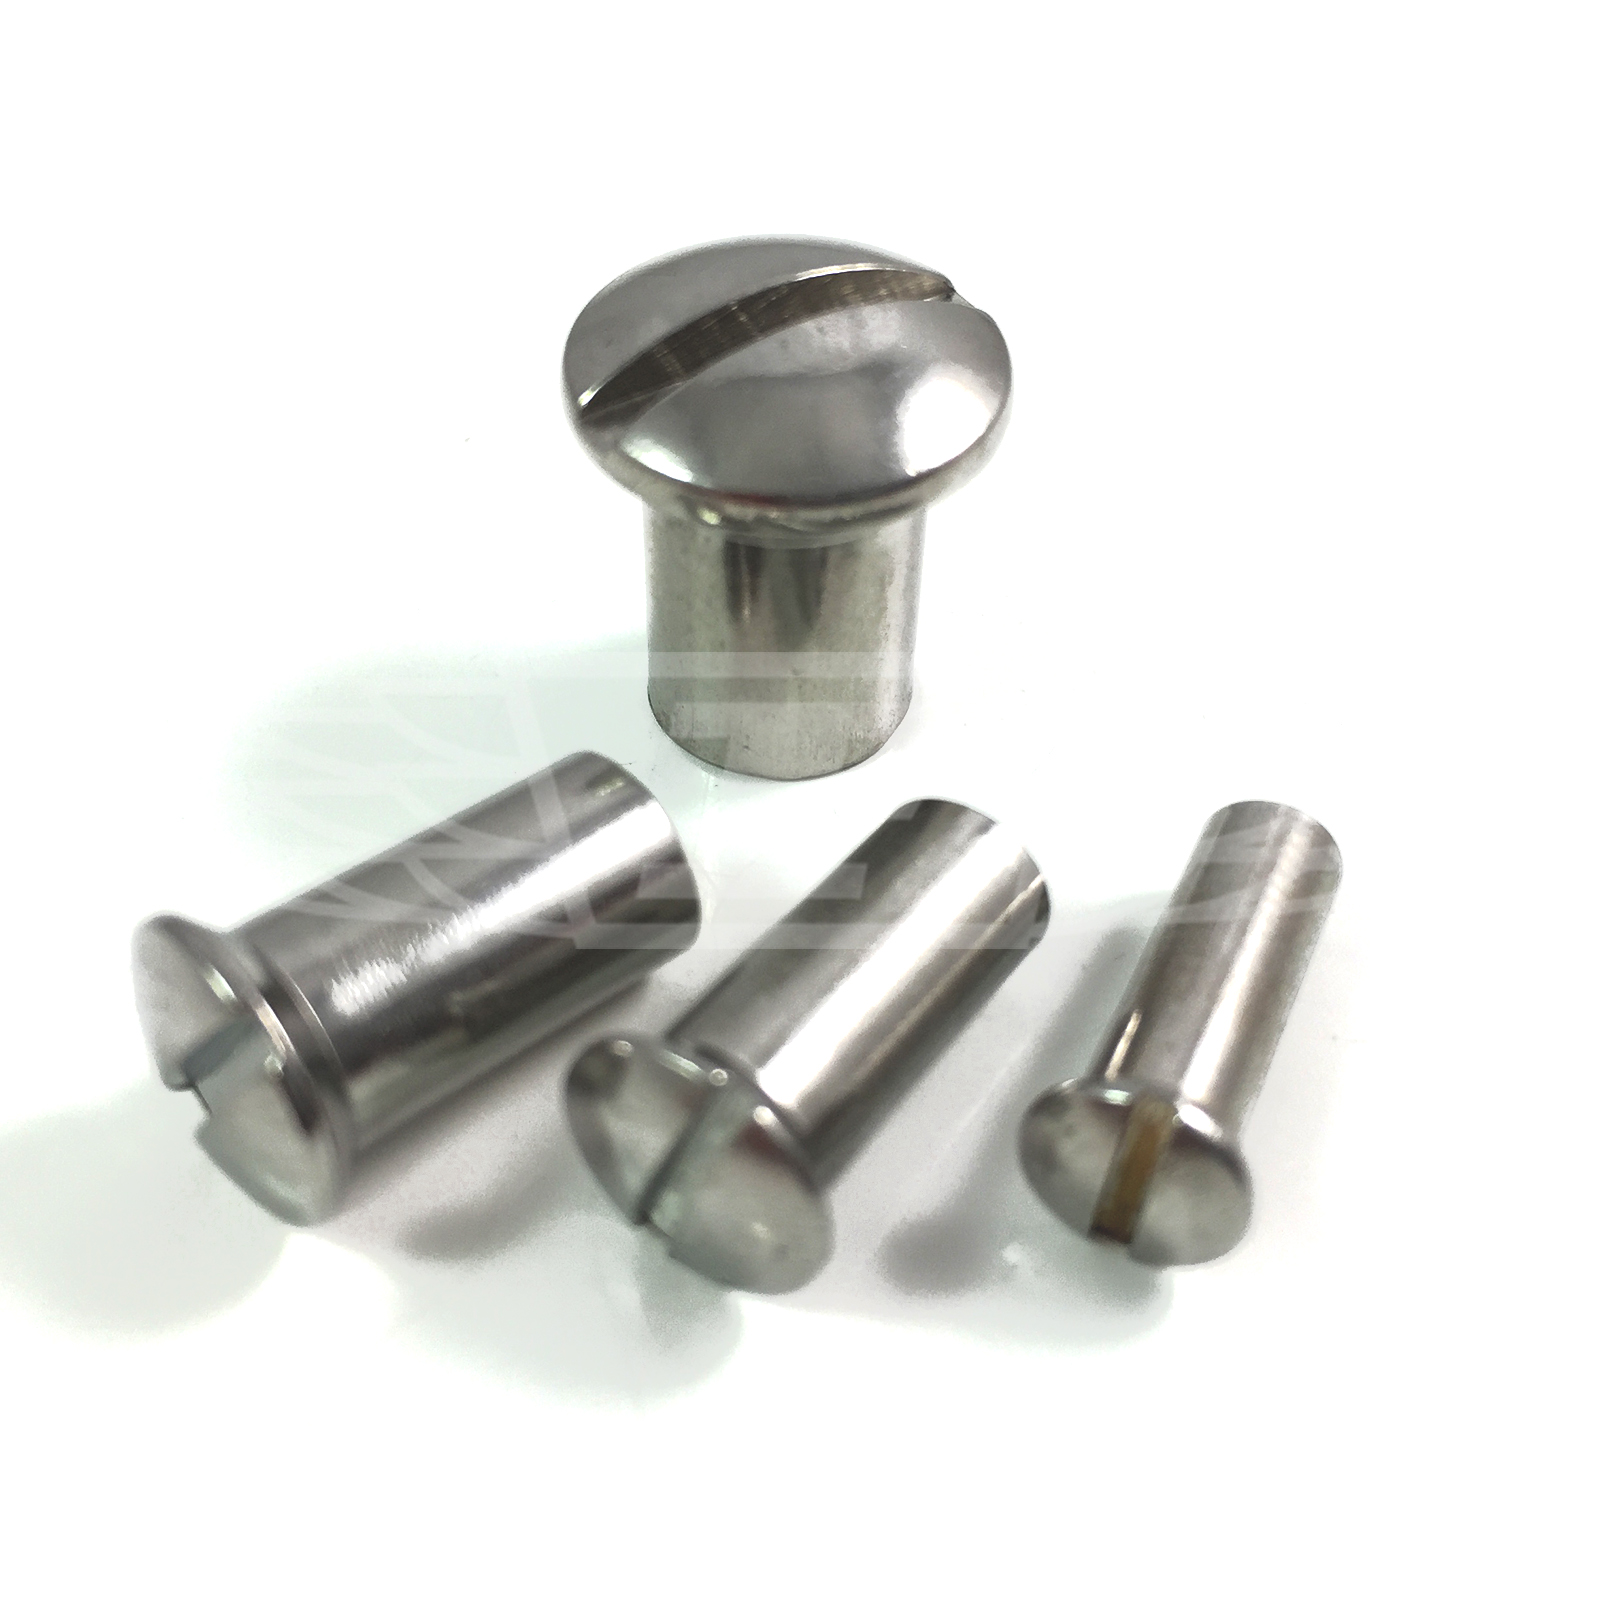 M a stainless steel raised countersunk